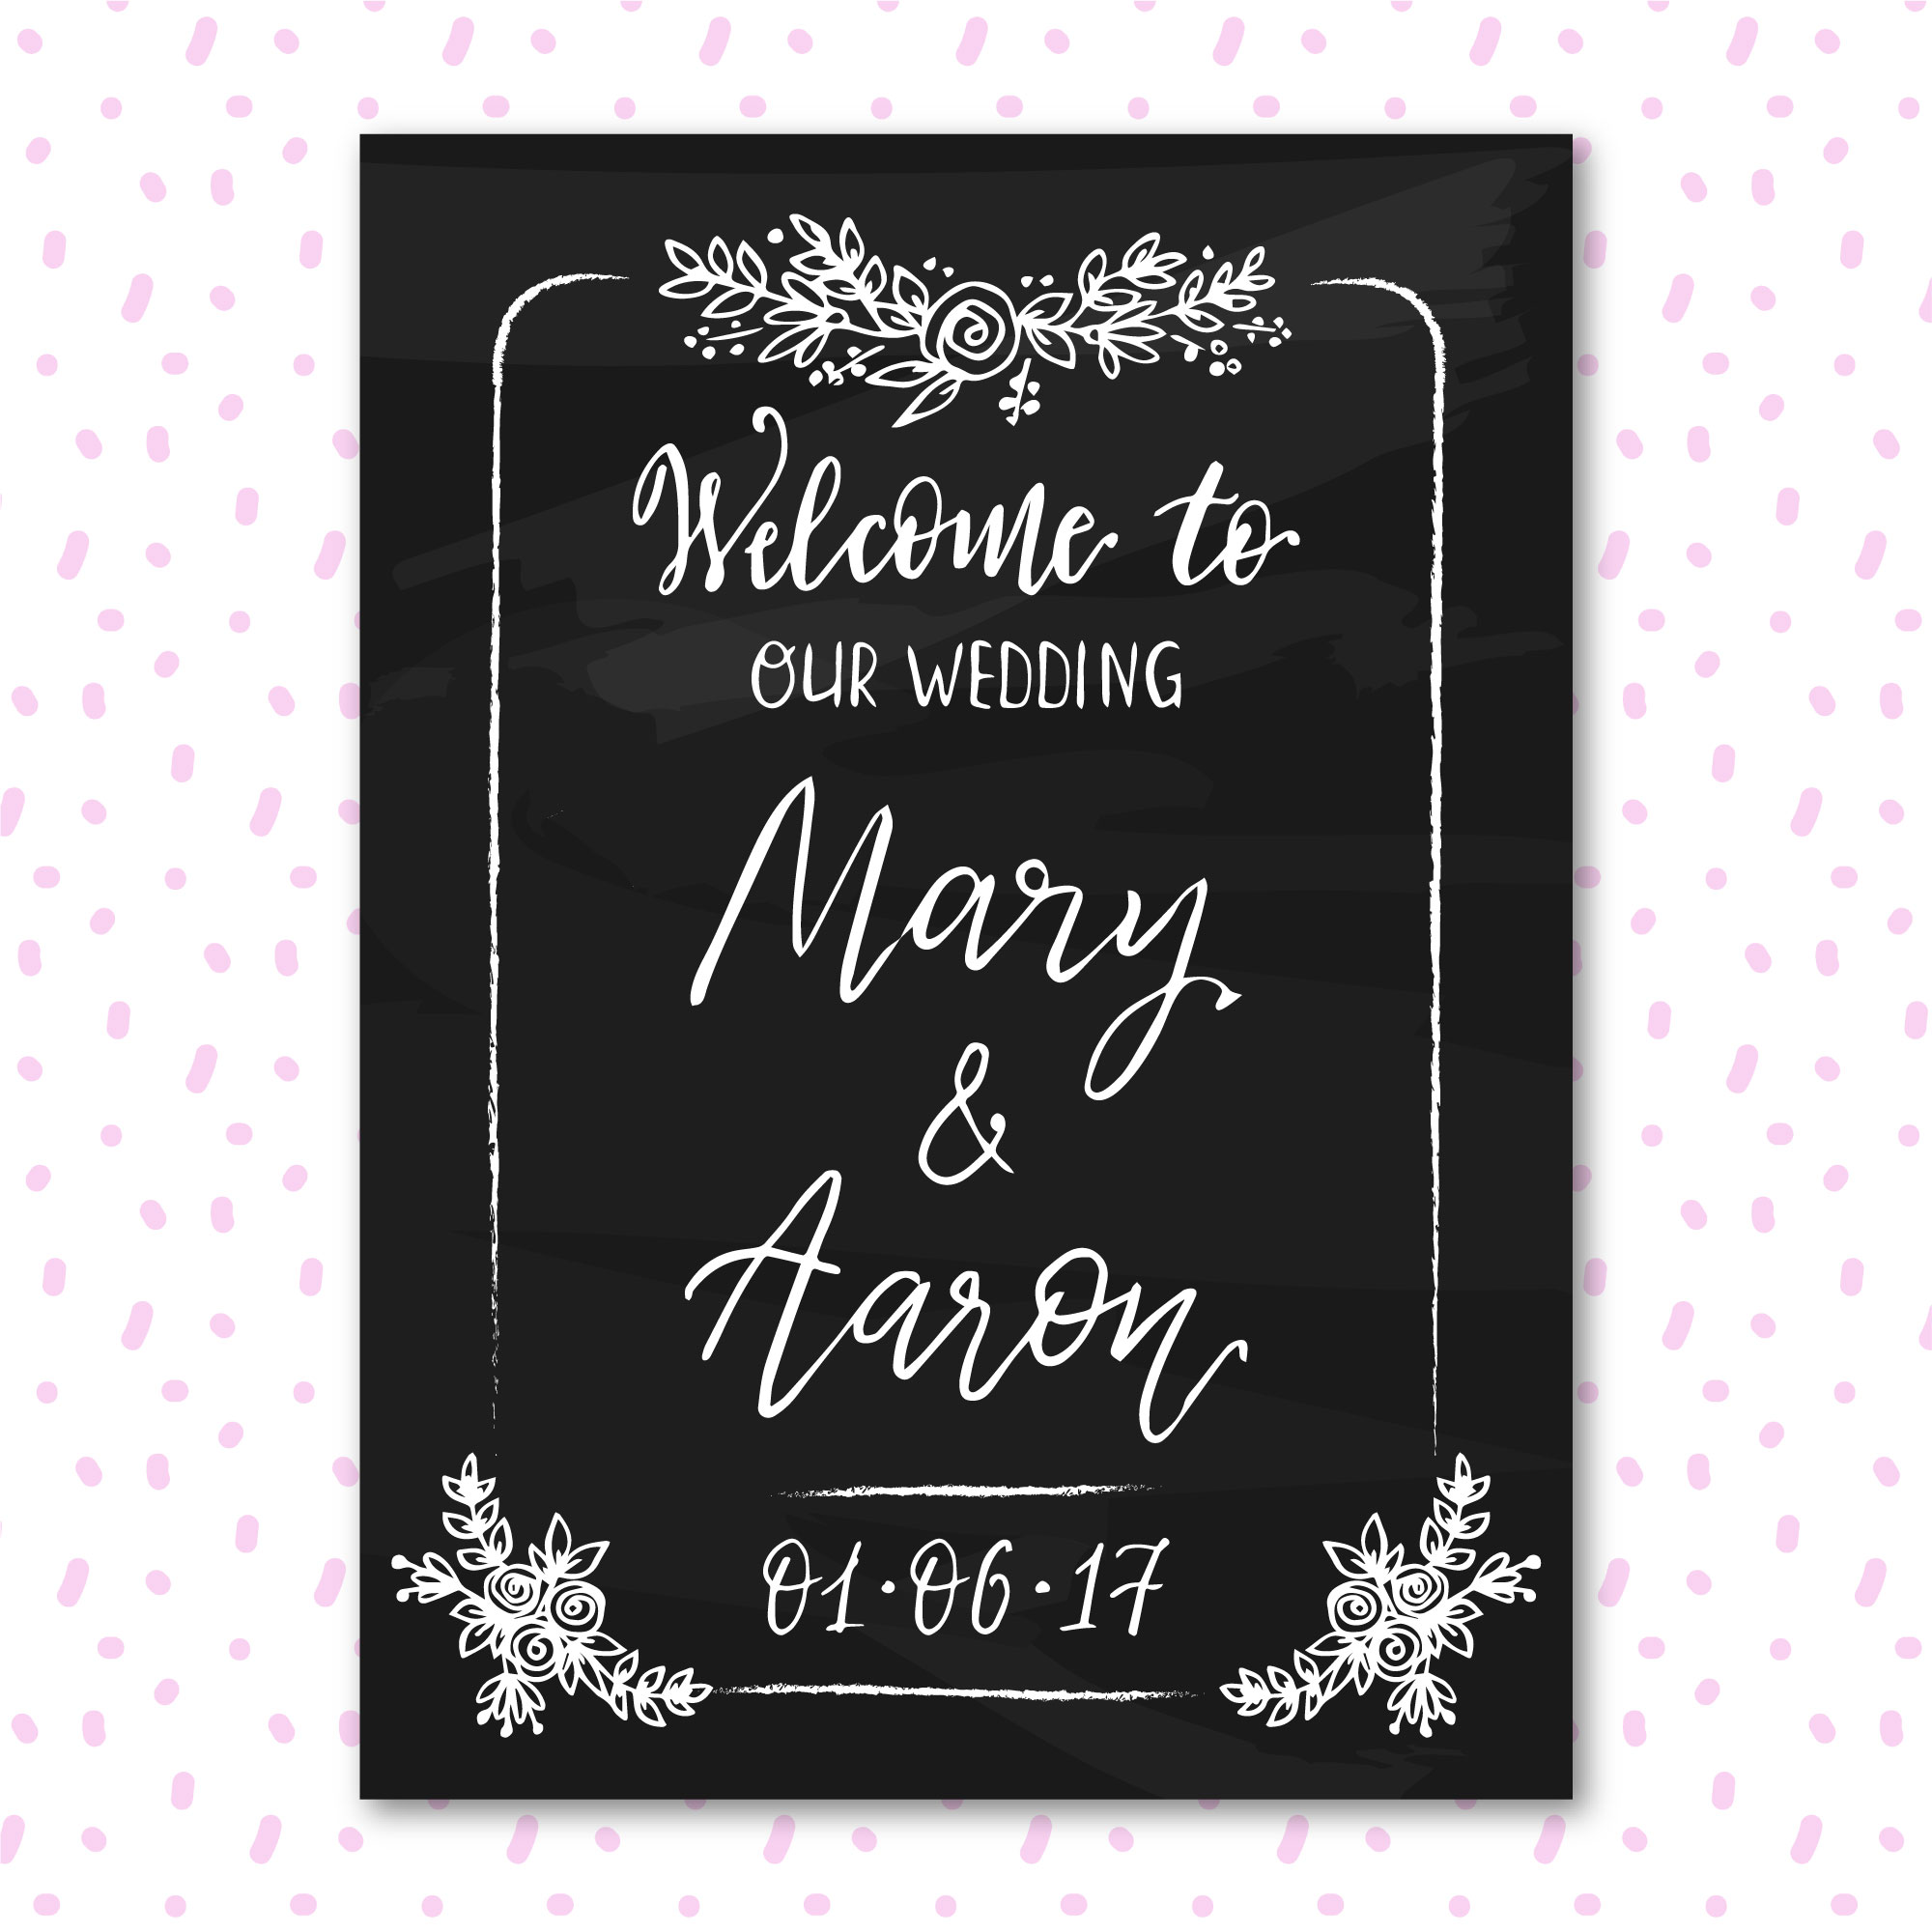 Wedding blackboard design